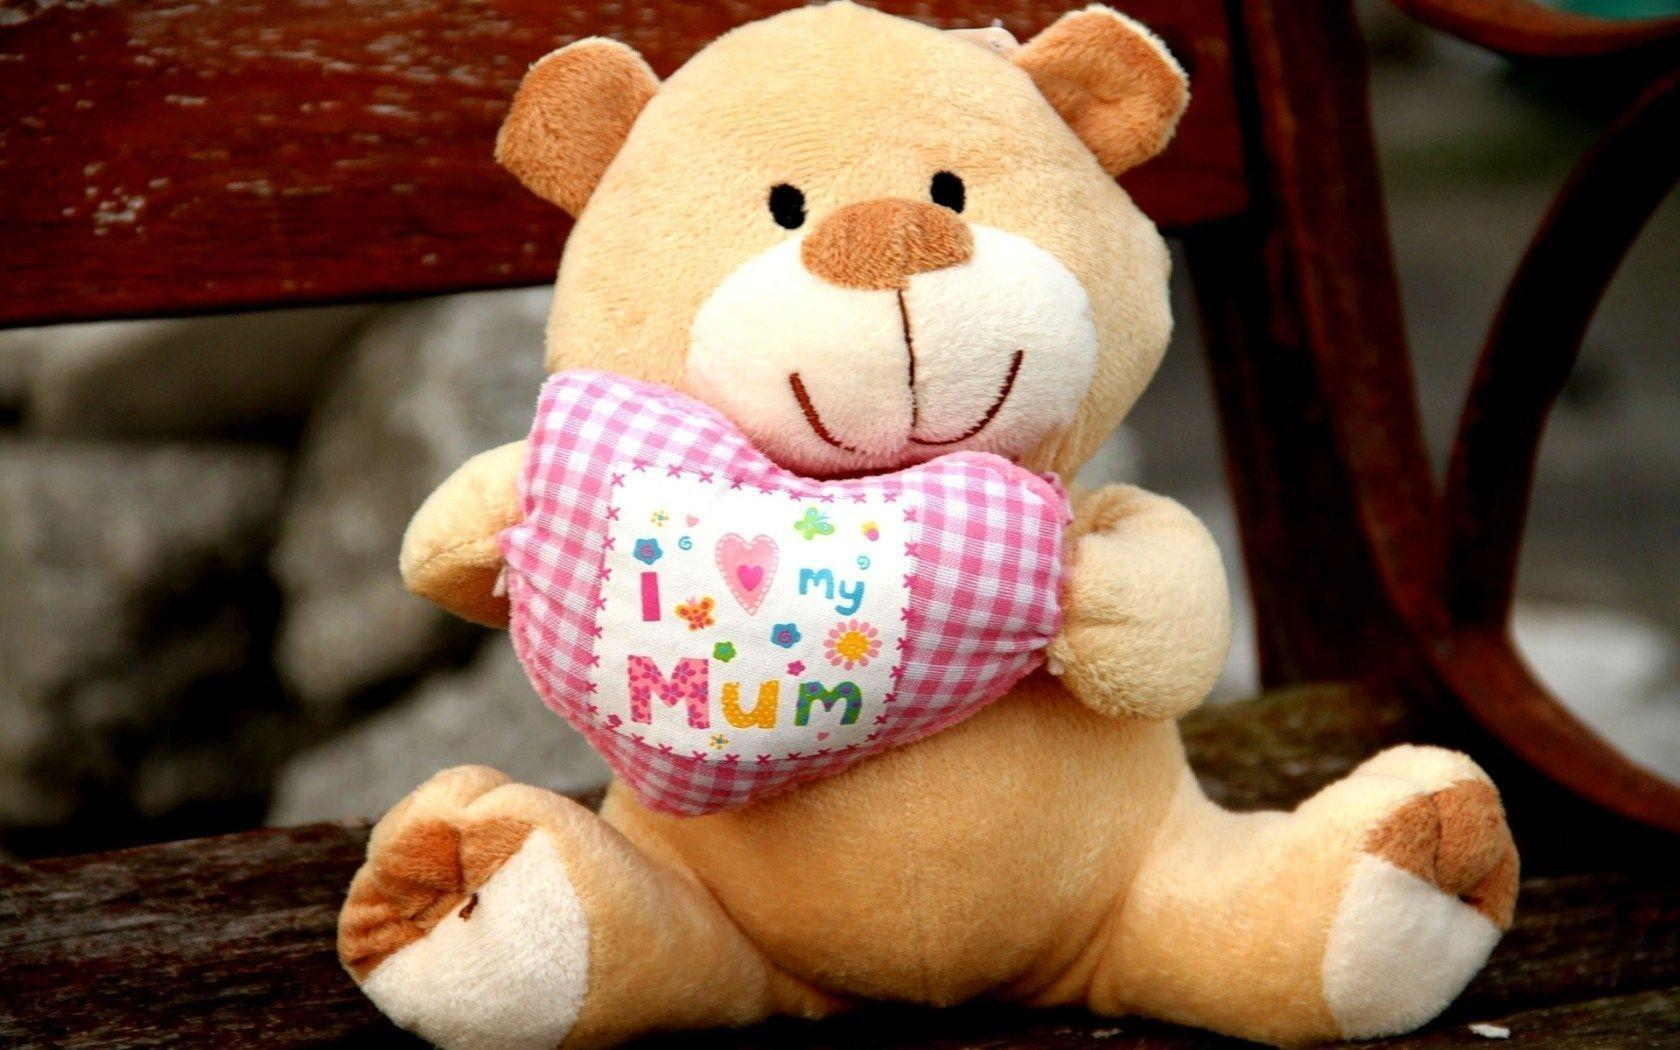 Wallpaper download cute lovers - Wallpapers For Cute Teddy Bear And Love Wallpapers Download